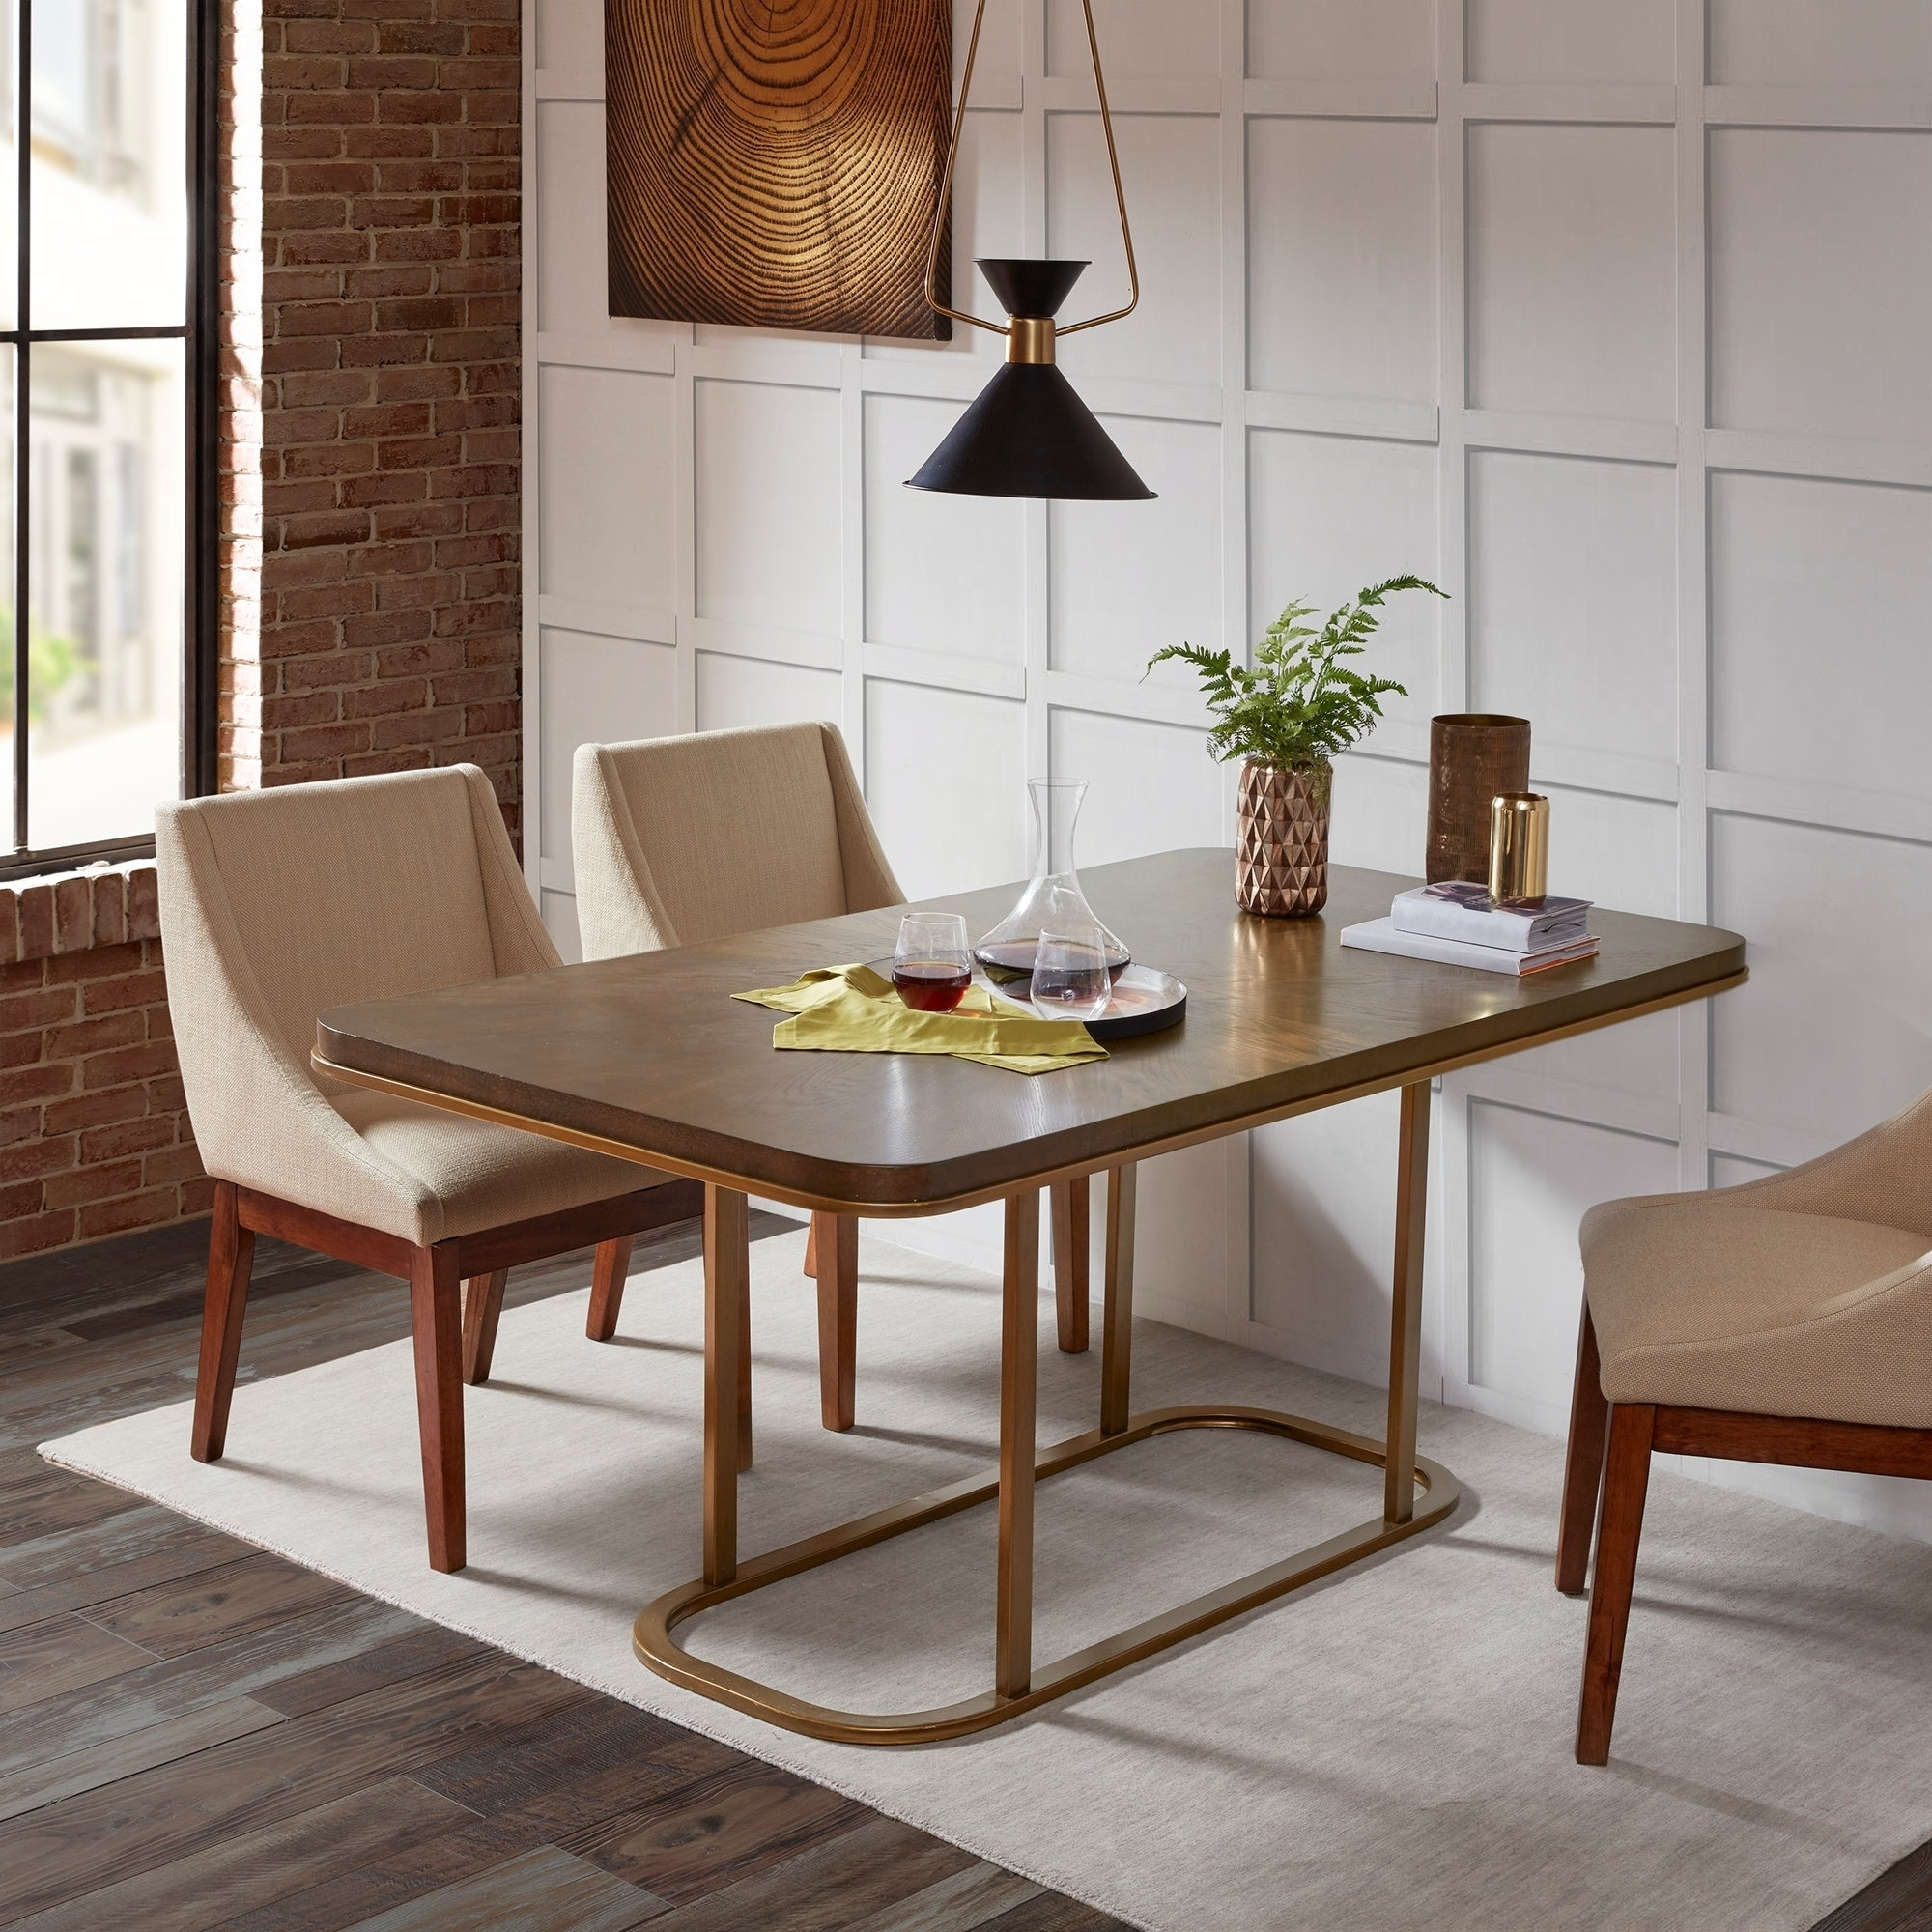 INK+IVY Stephan Brown Rectangle Dining Table - 68w x 36.5d x 30h